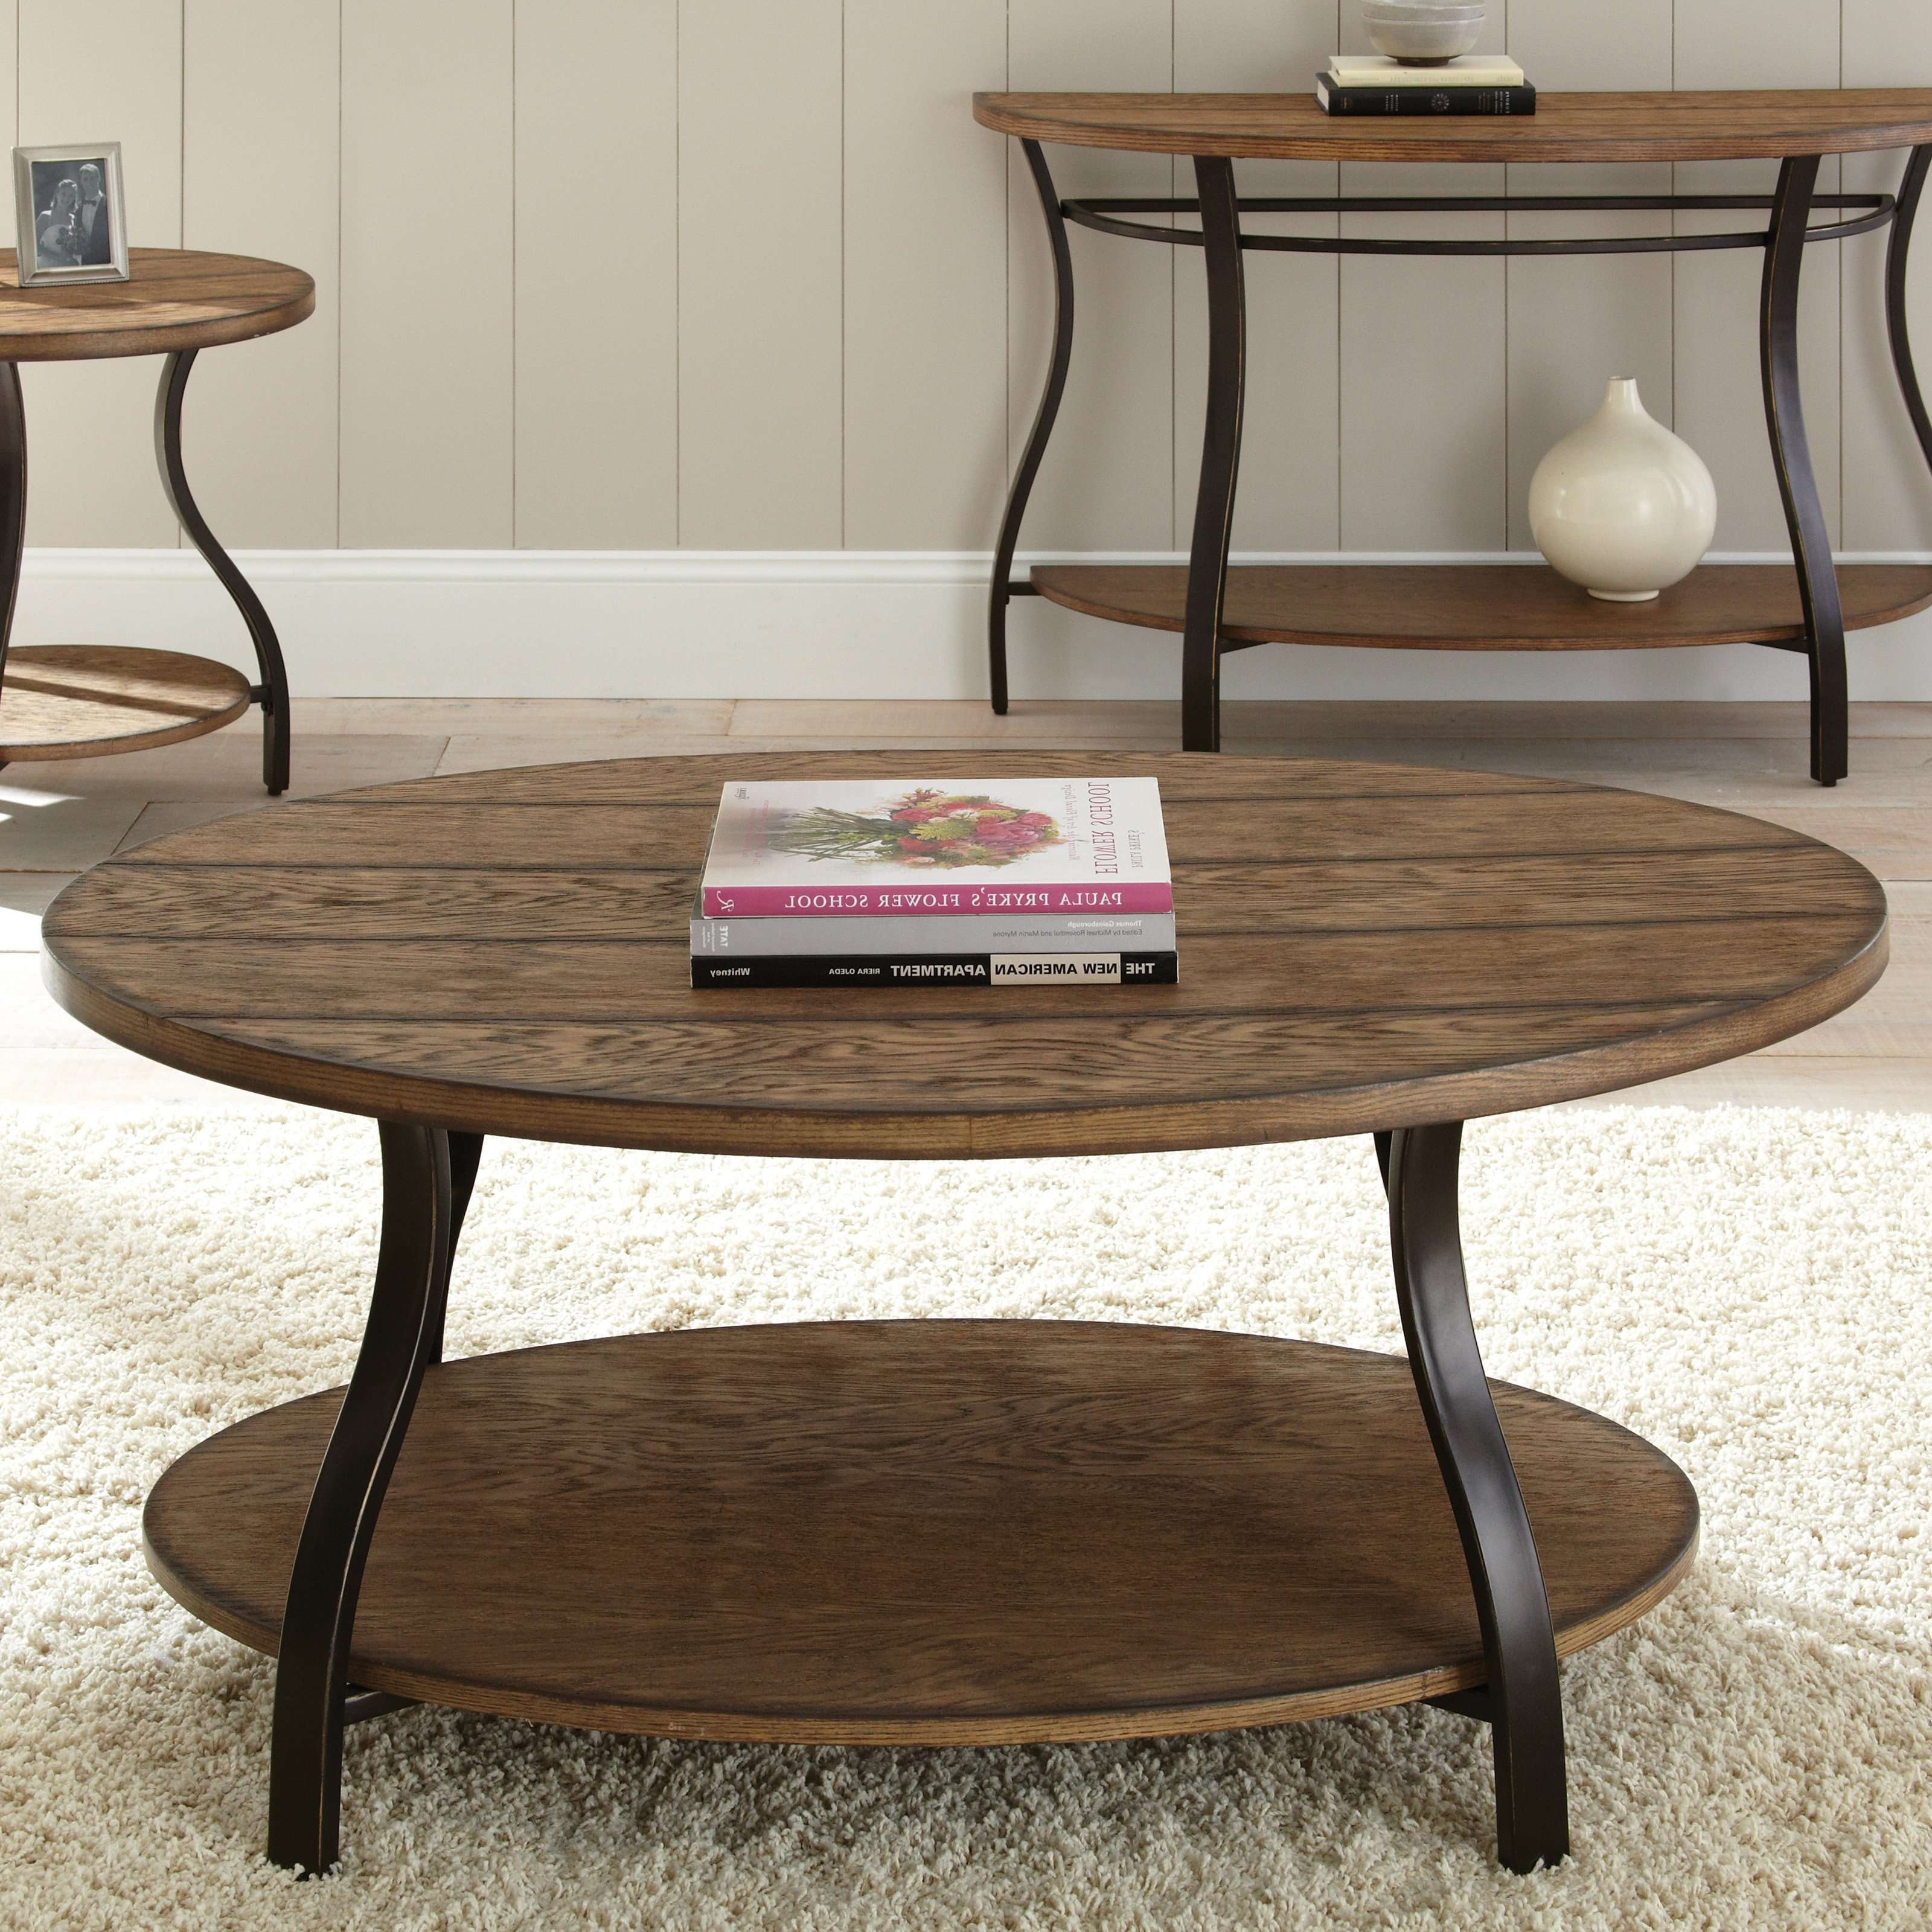 Hayneedle Pertaining To Latest Oak Wood Coffee Tables (View 13 of 20)